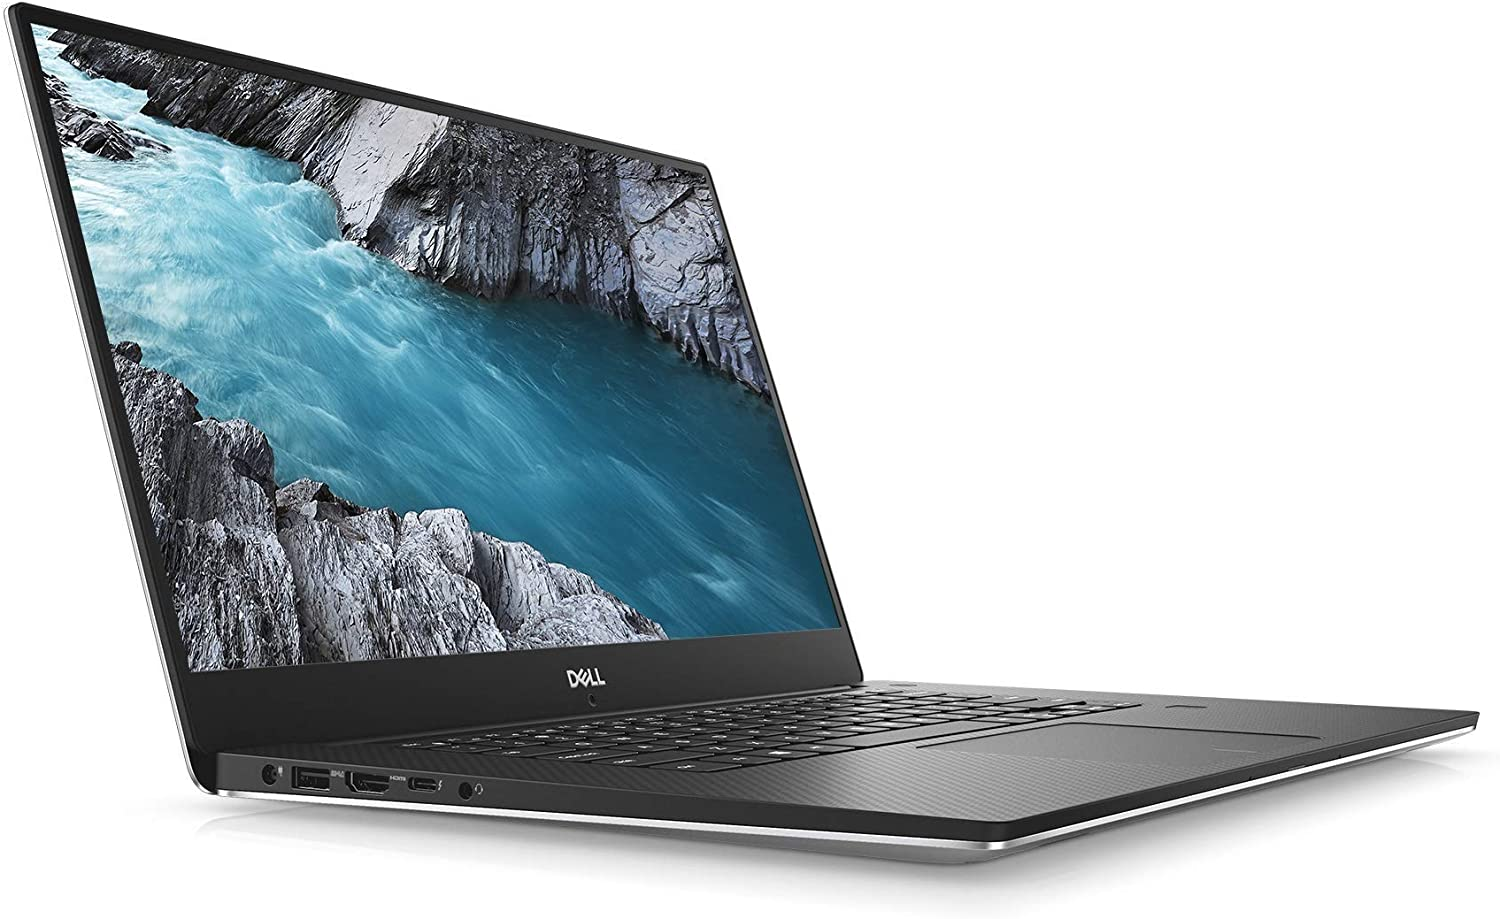 """Dell XPS 15 9570 Gaming Laptop, Windows 10, Intel I7-8750H, 2.2 GB, NVIDIA, 512 GB, 15.6"""" (Certified Refurbished)"""